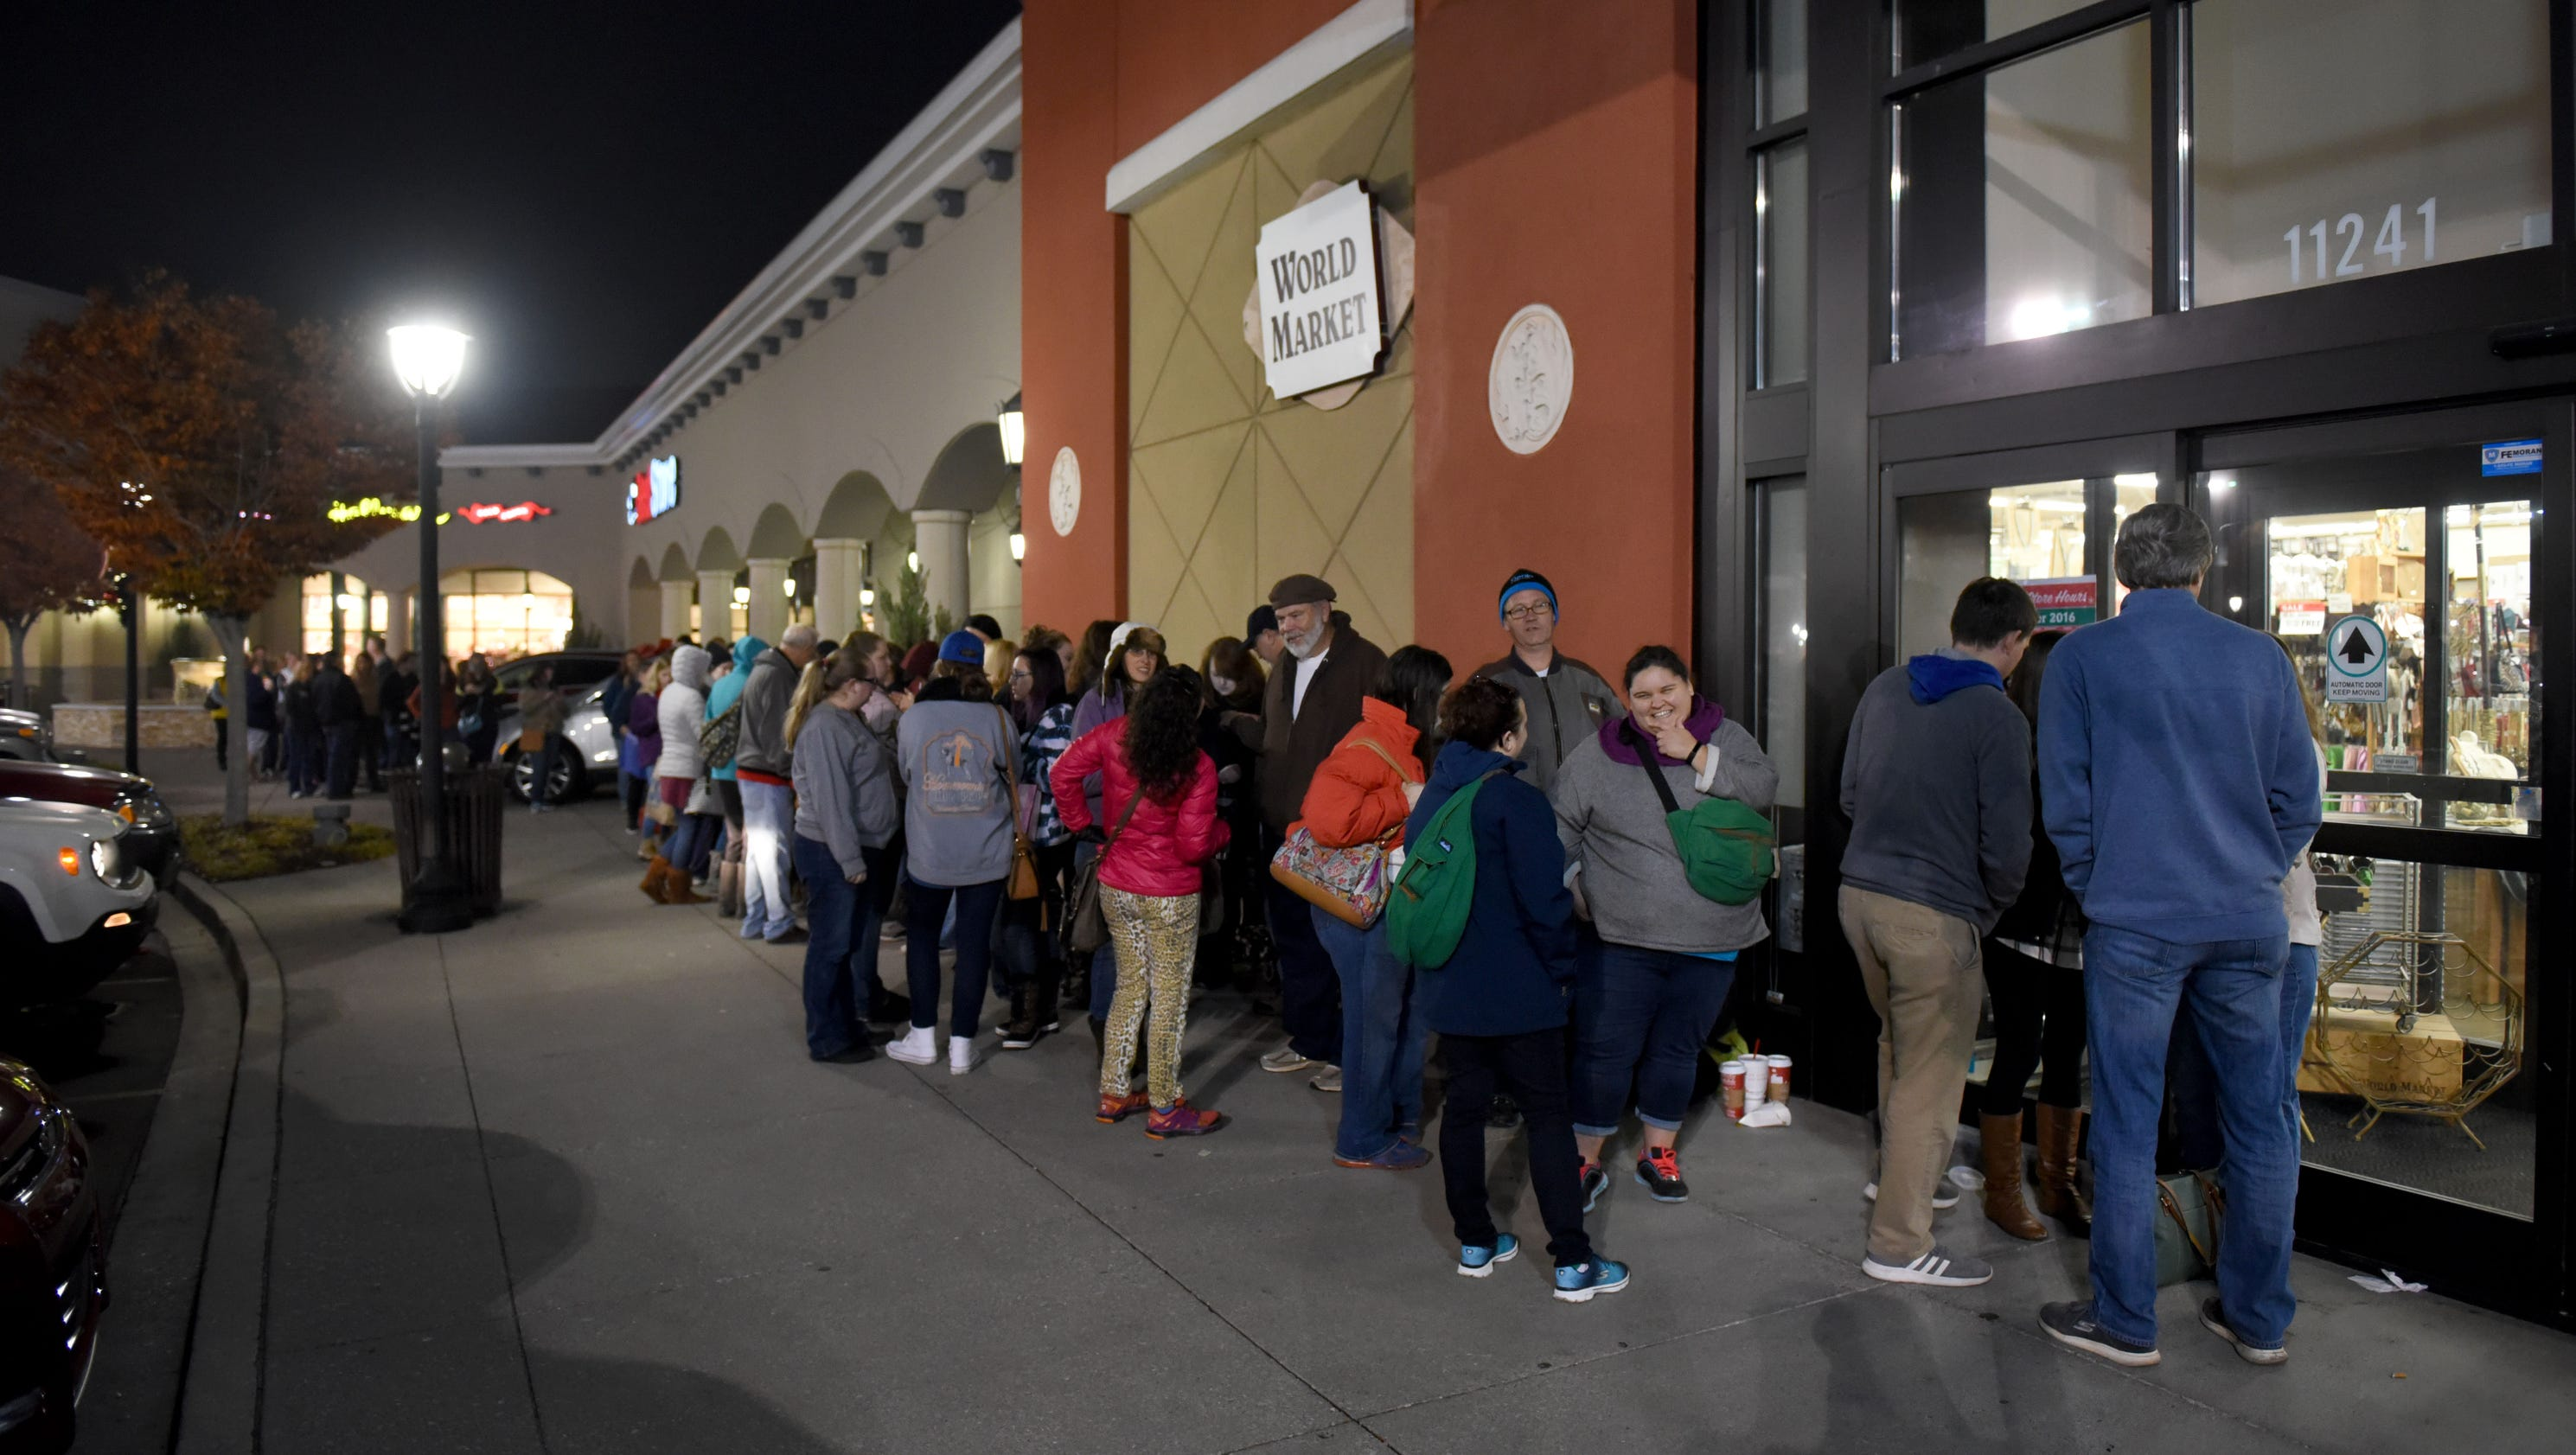 Black Friday Walmart Home Depot others open in Knoxville tn